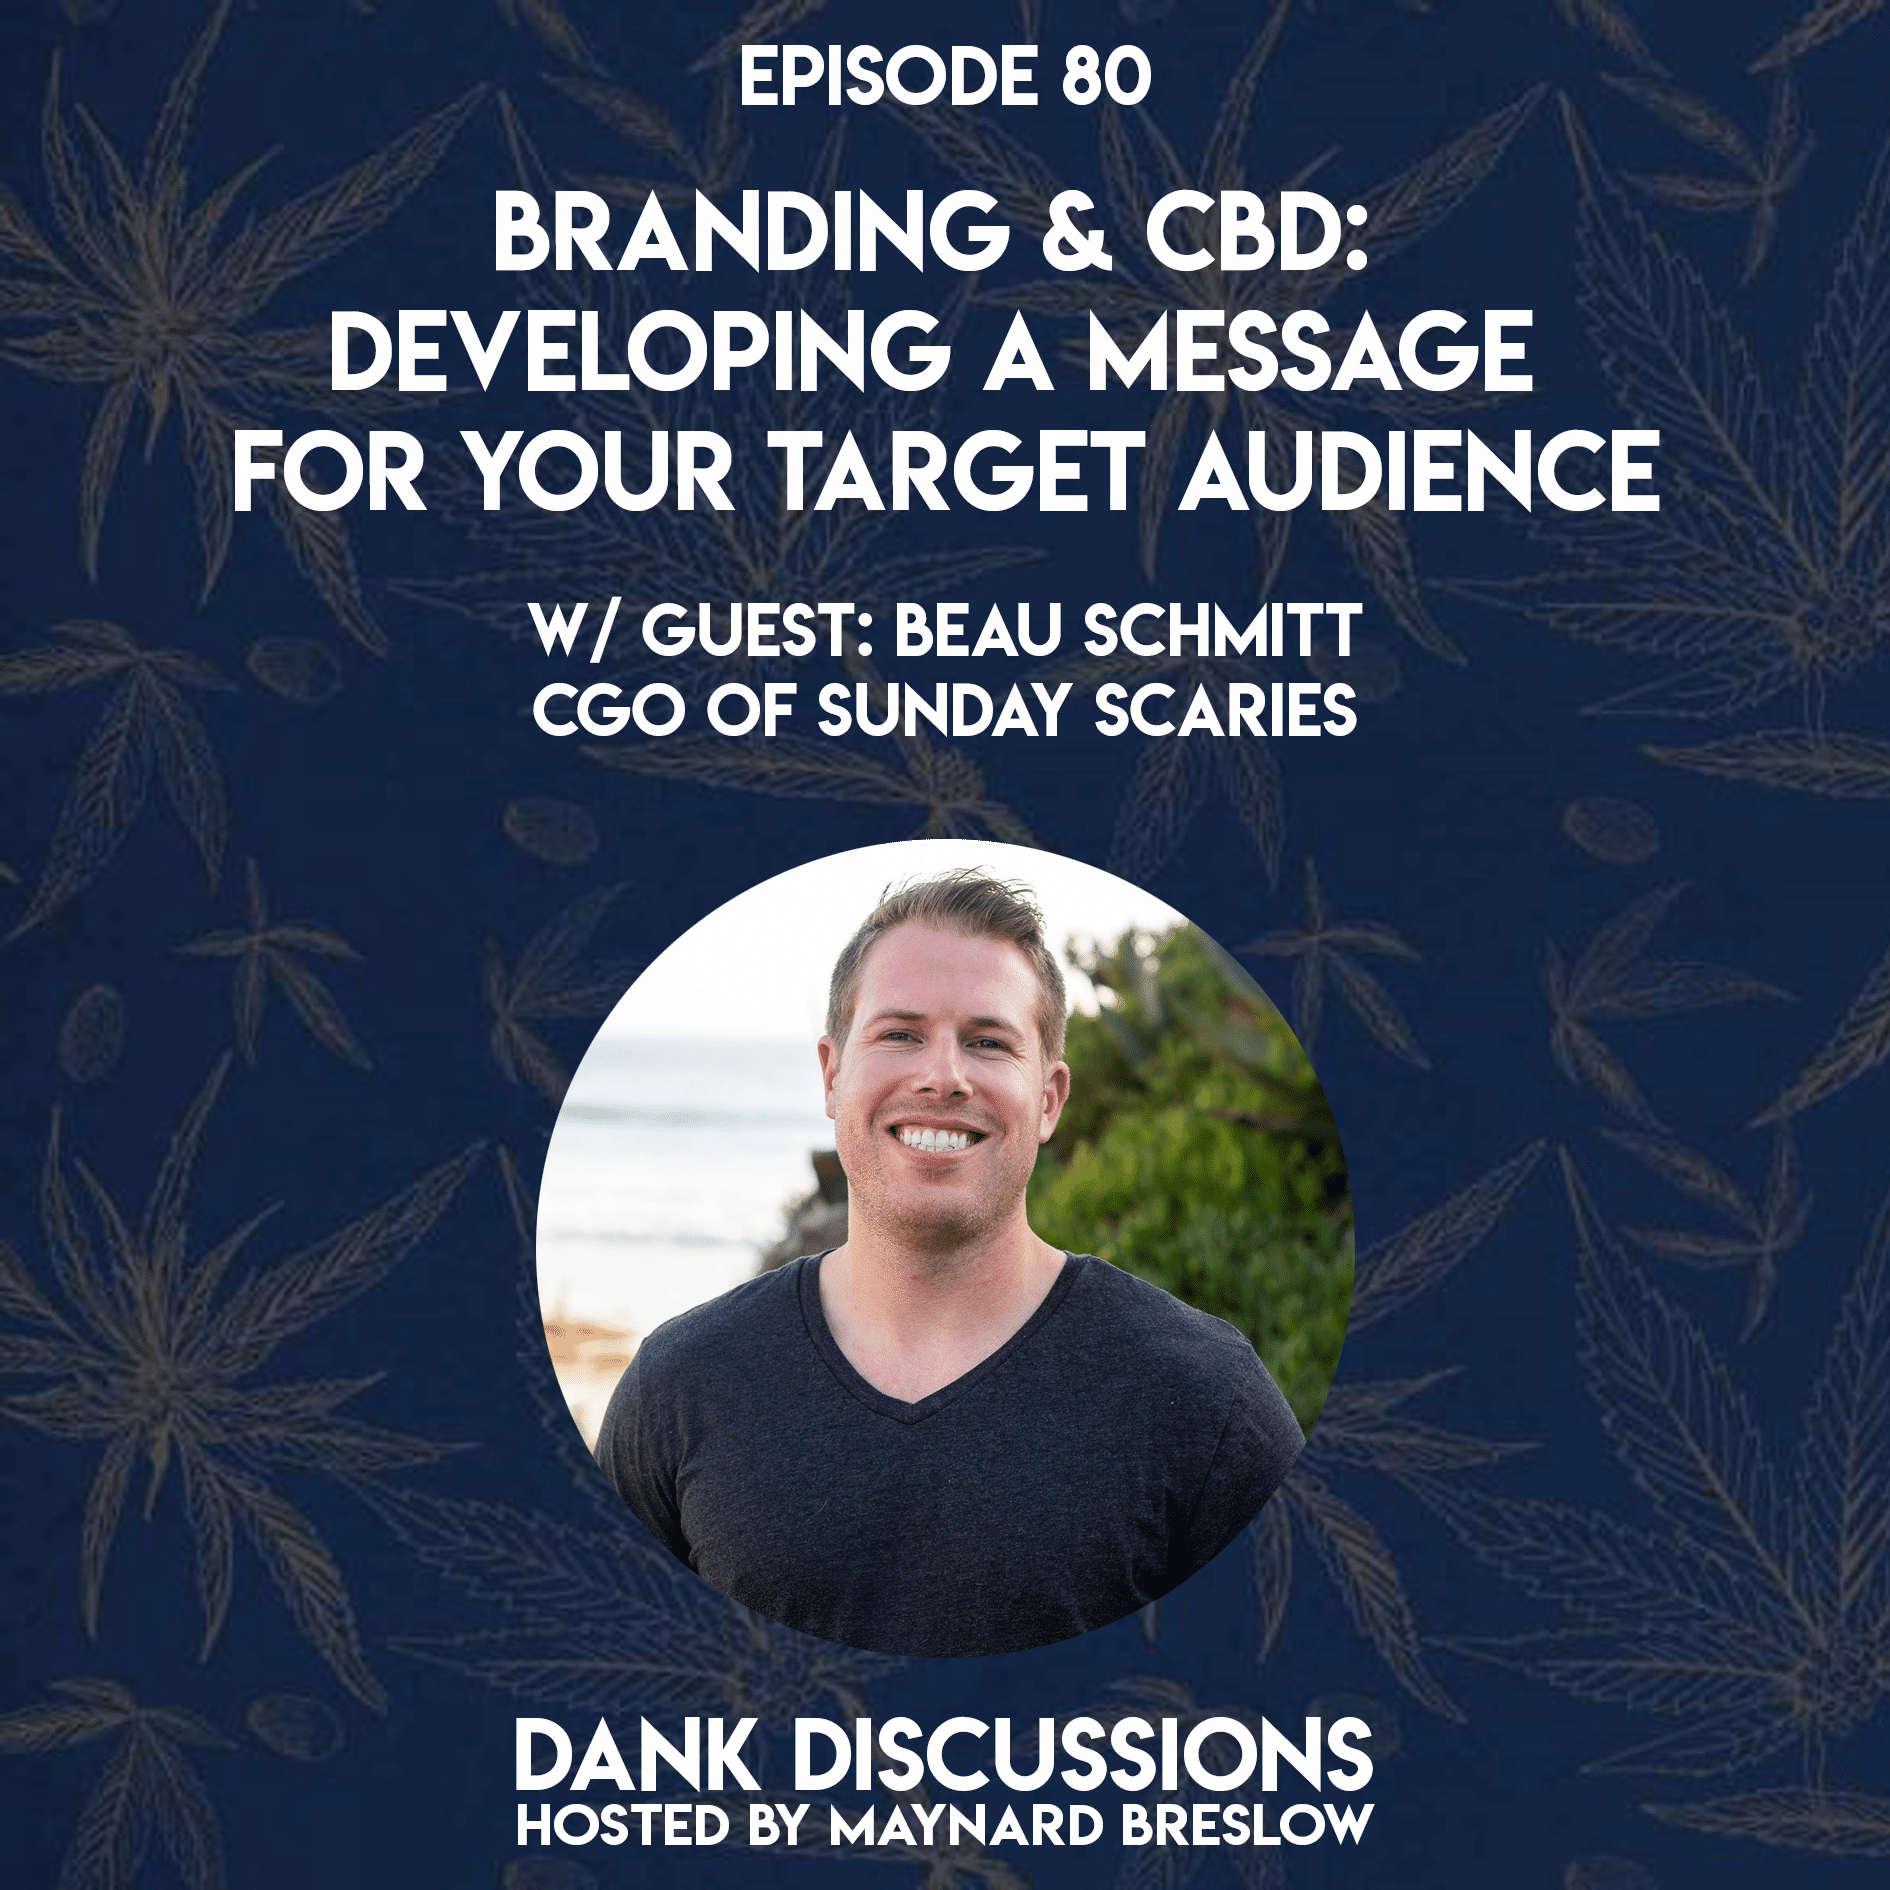 Branding & CBD: Developing a Message for Your Target Audience